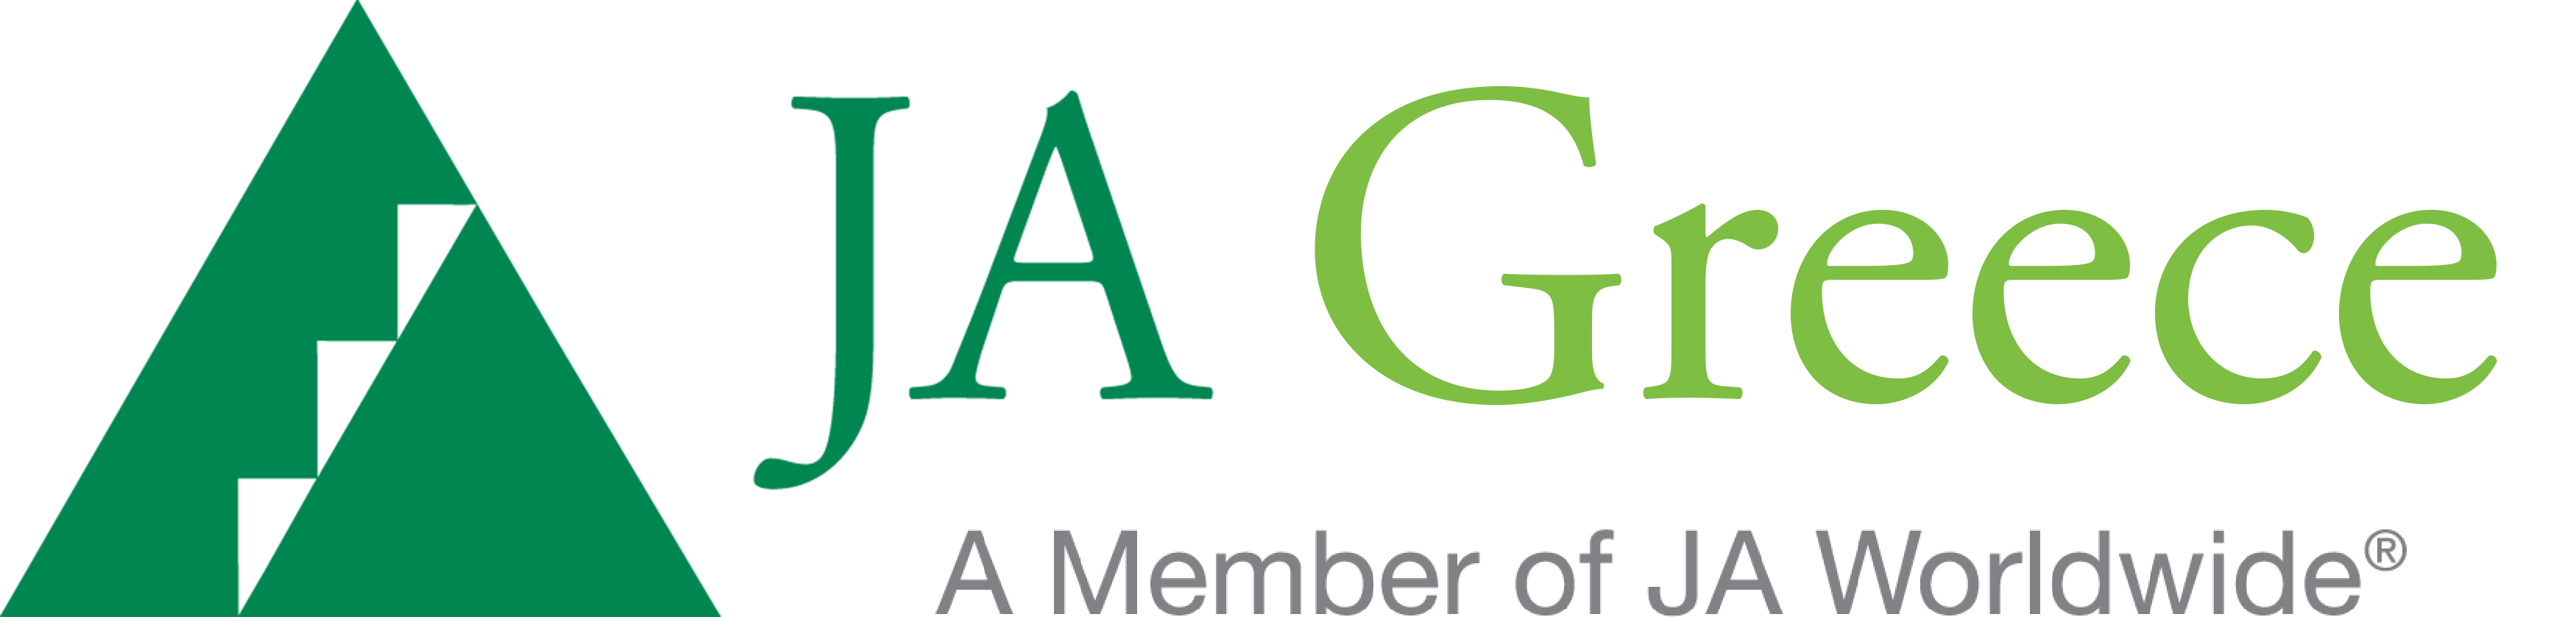 JA Greece logo